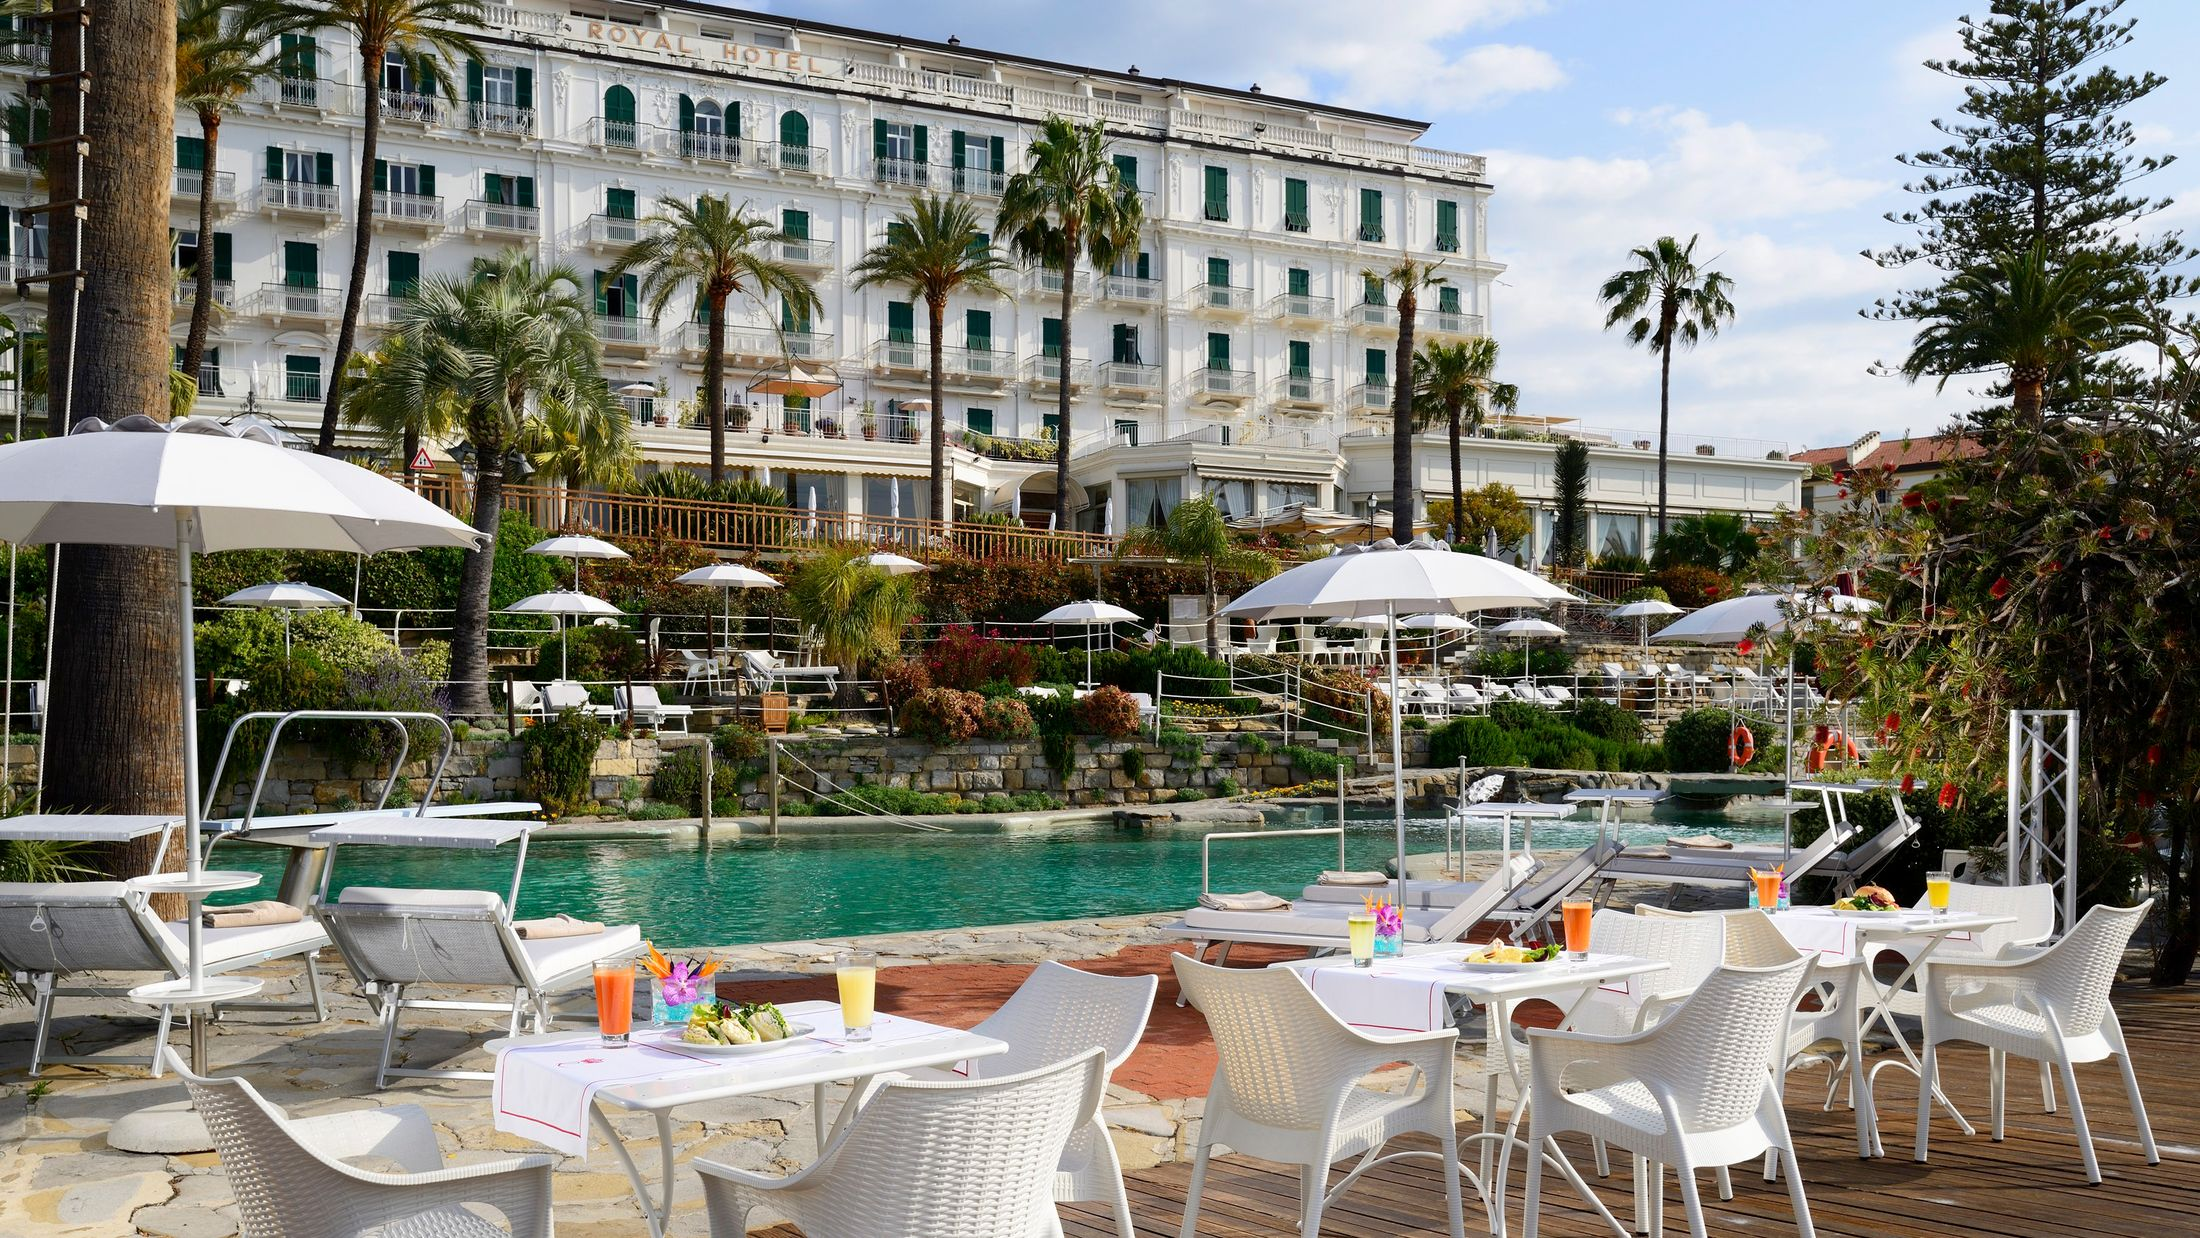 114982-Royal-Sanremo-lunch-by-the-pool-001-Hybris